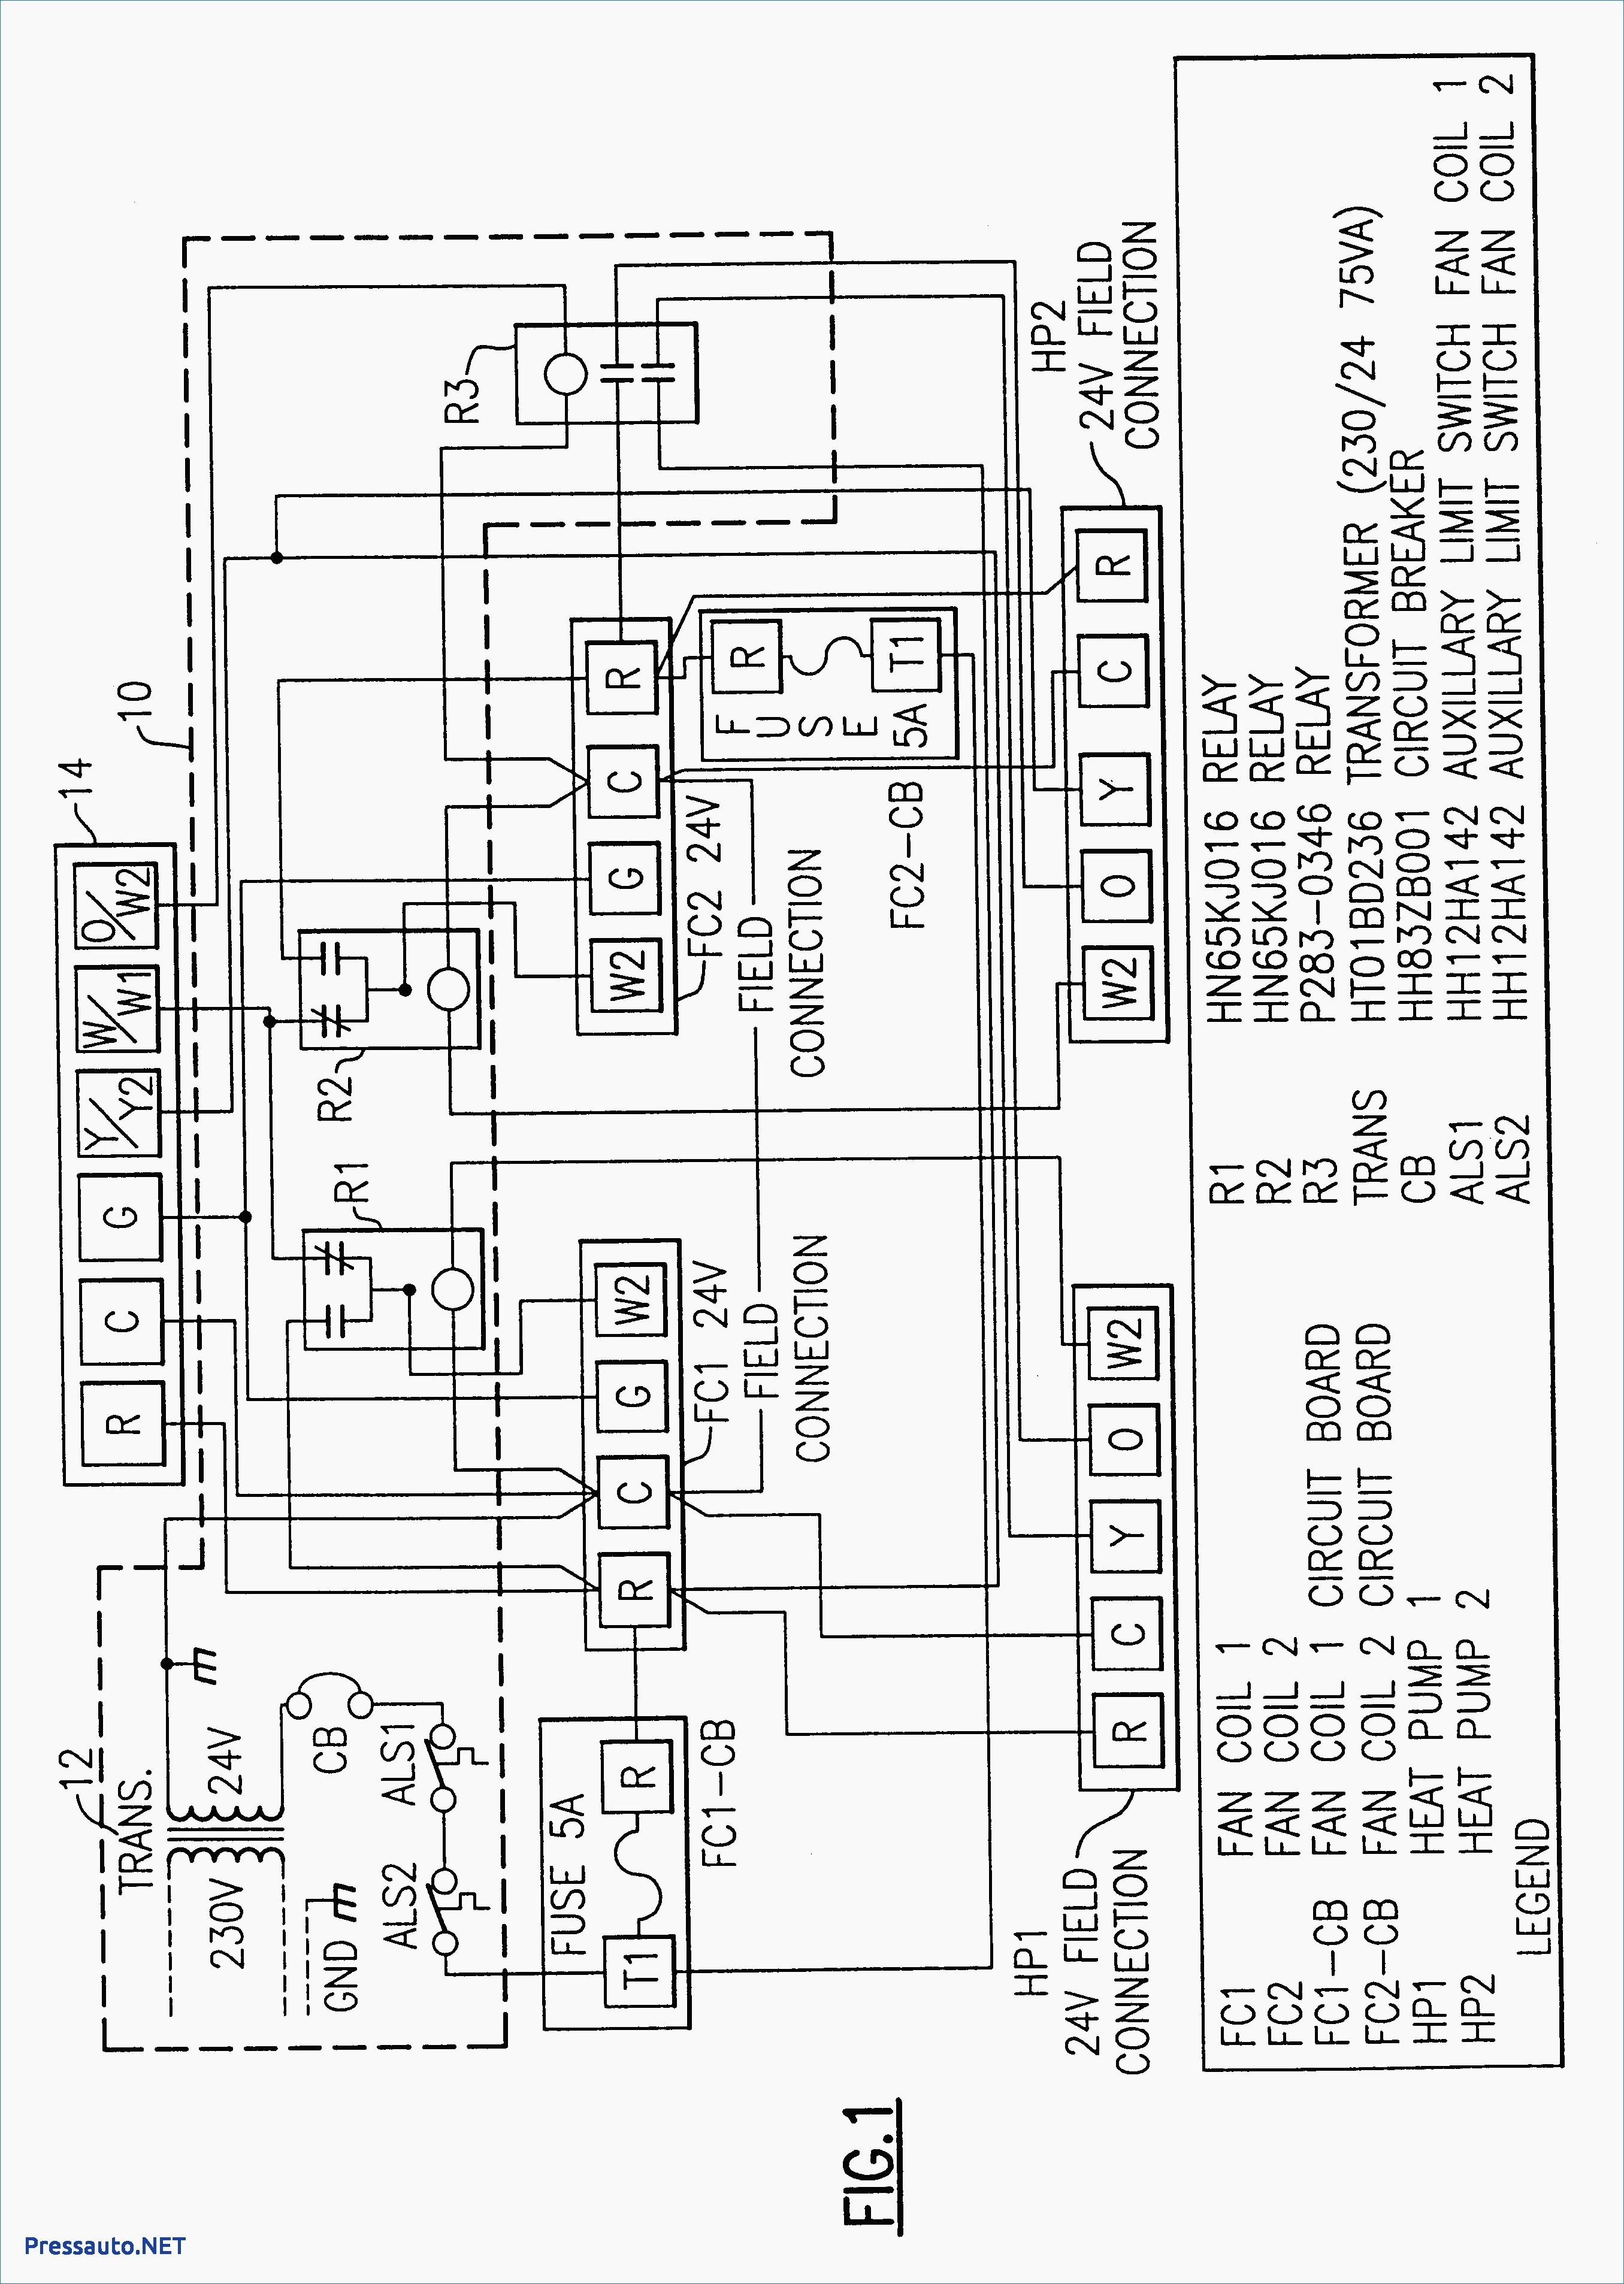 wiring diagrams for new york homes wiring diagram expert GMC Fuse Box Diagrams